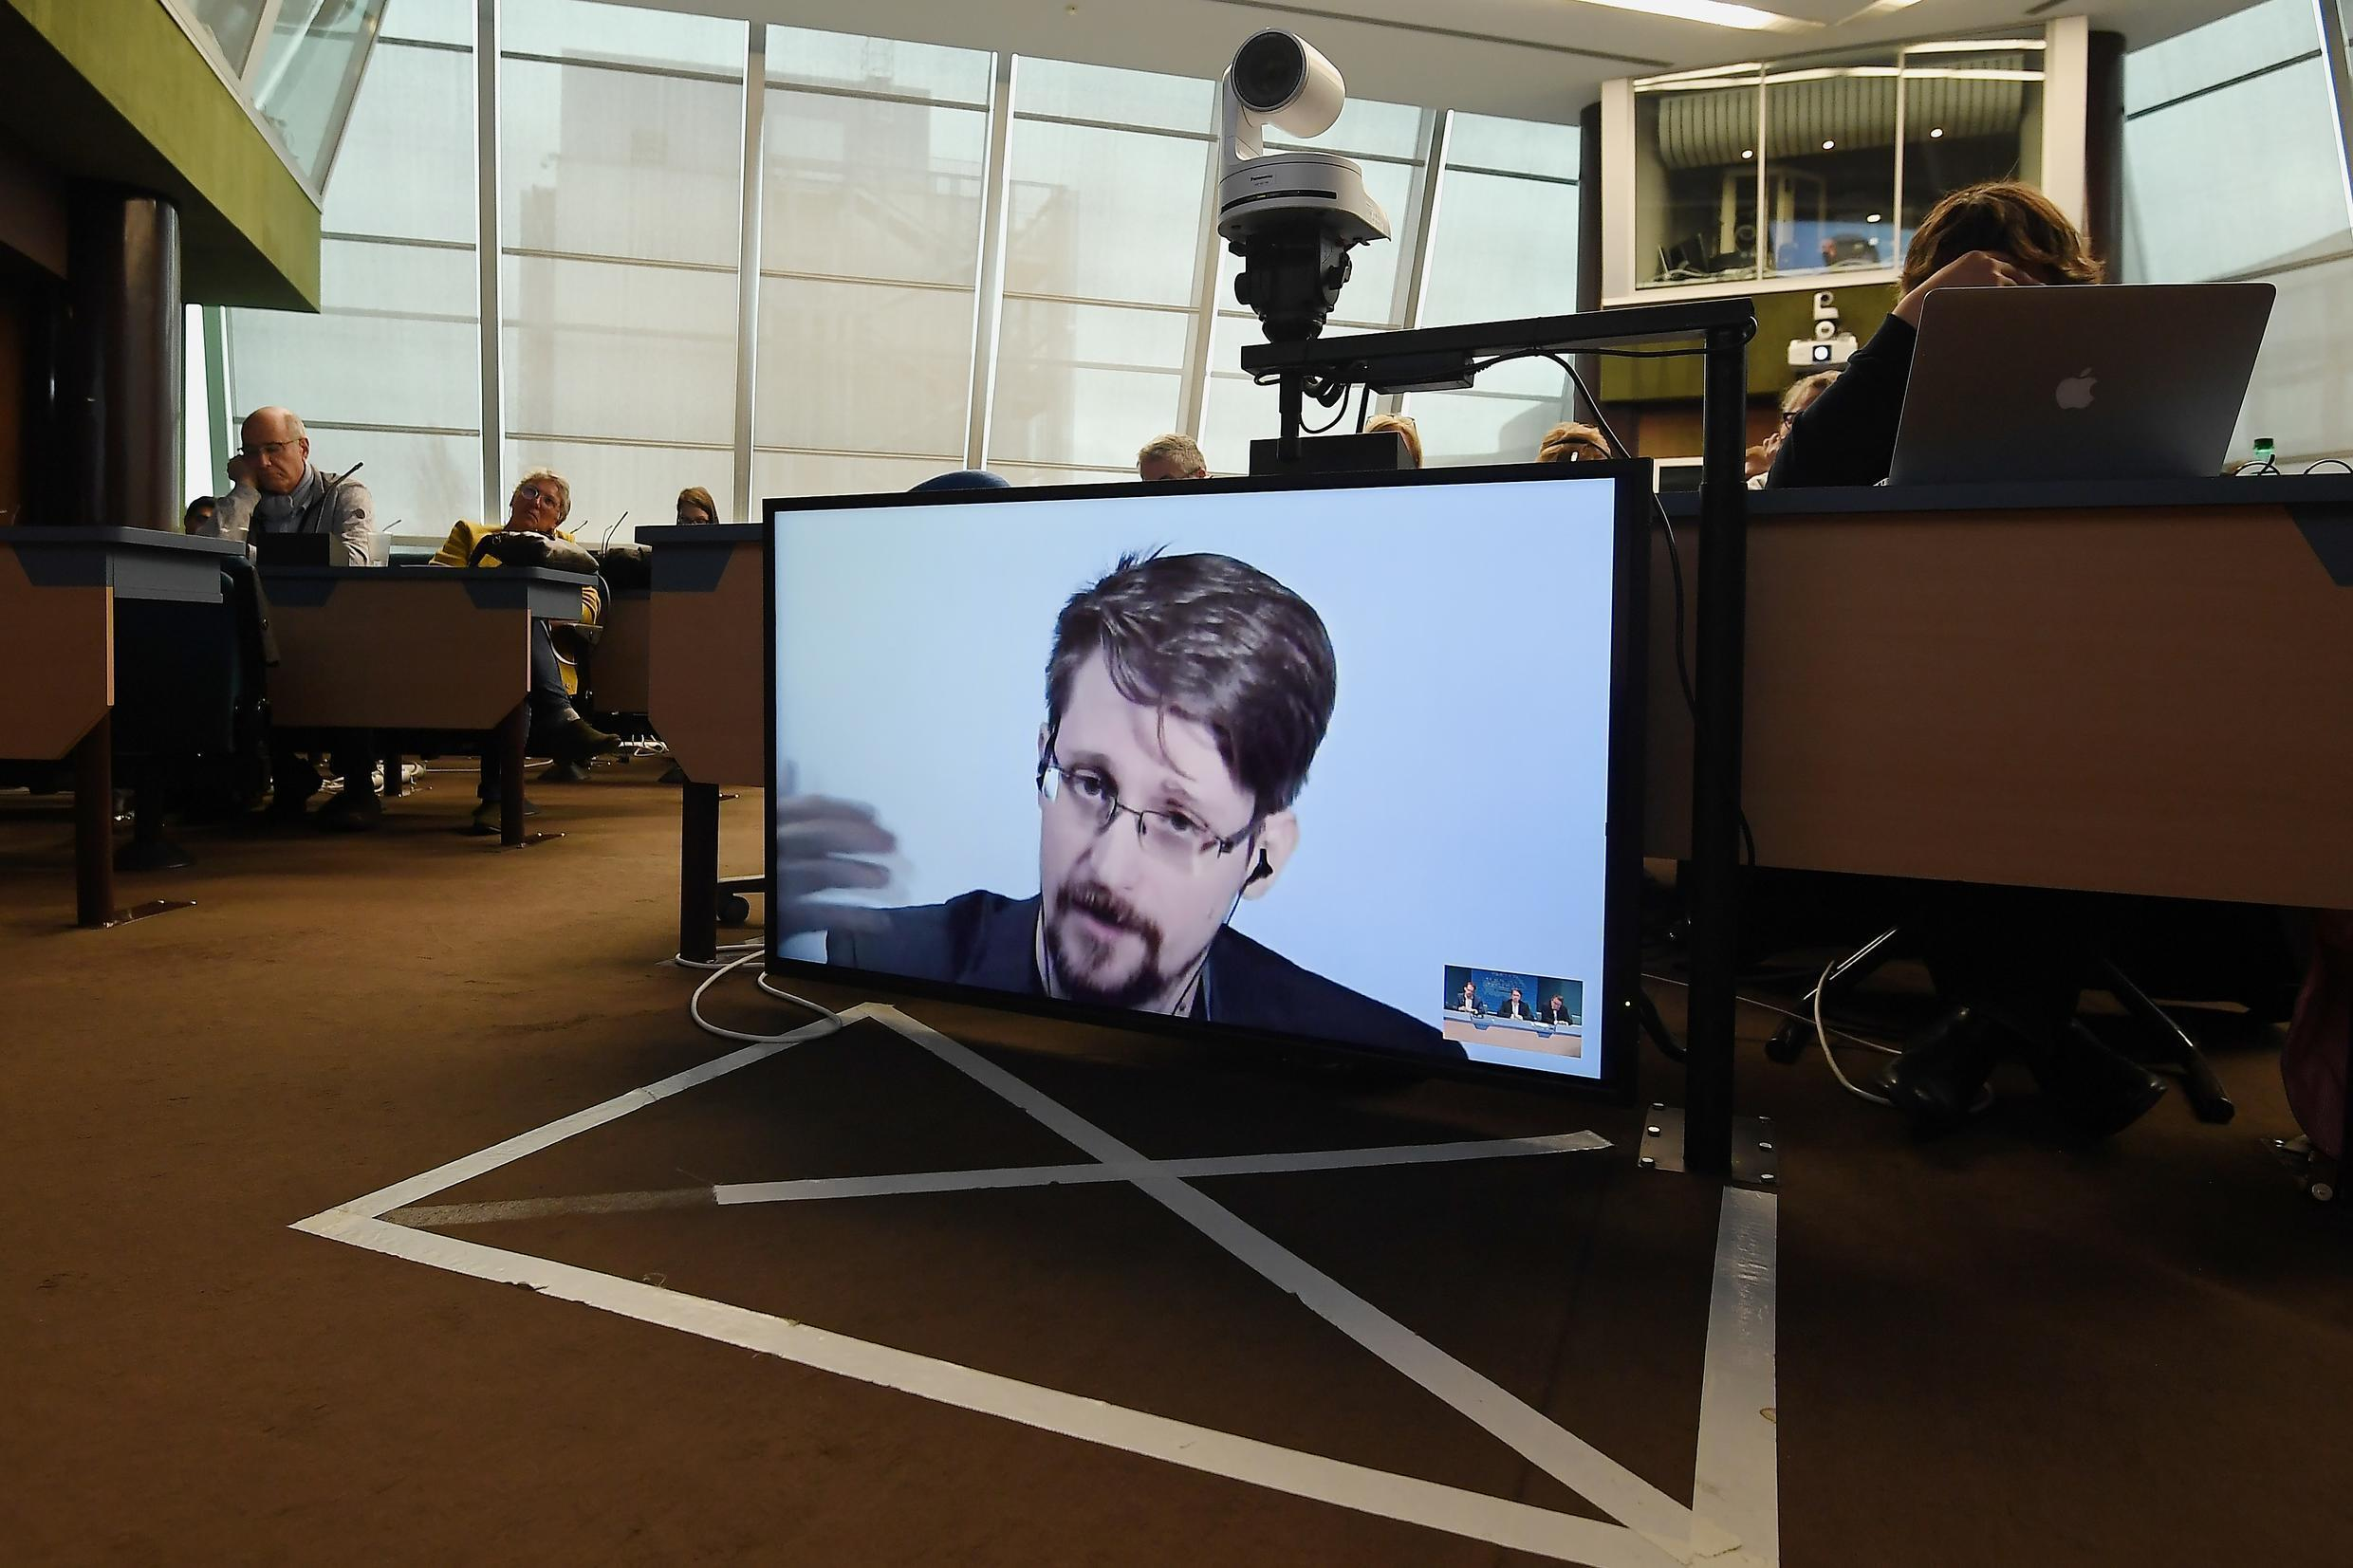 Edward Snowden, shown here speaking via video link during a European meeting on whistleblowers in 2019, has said he would like to return to the United States if he can get a fair trial